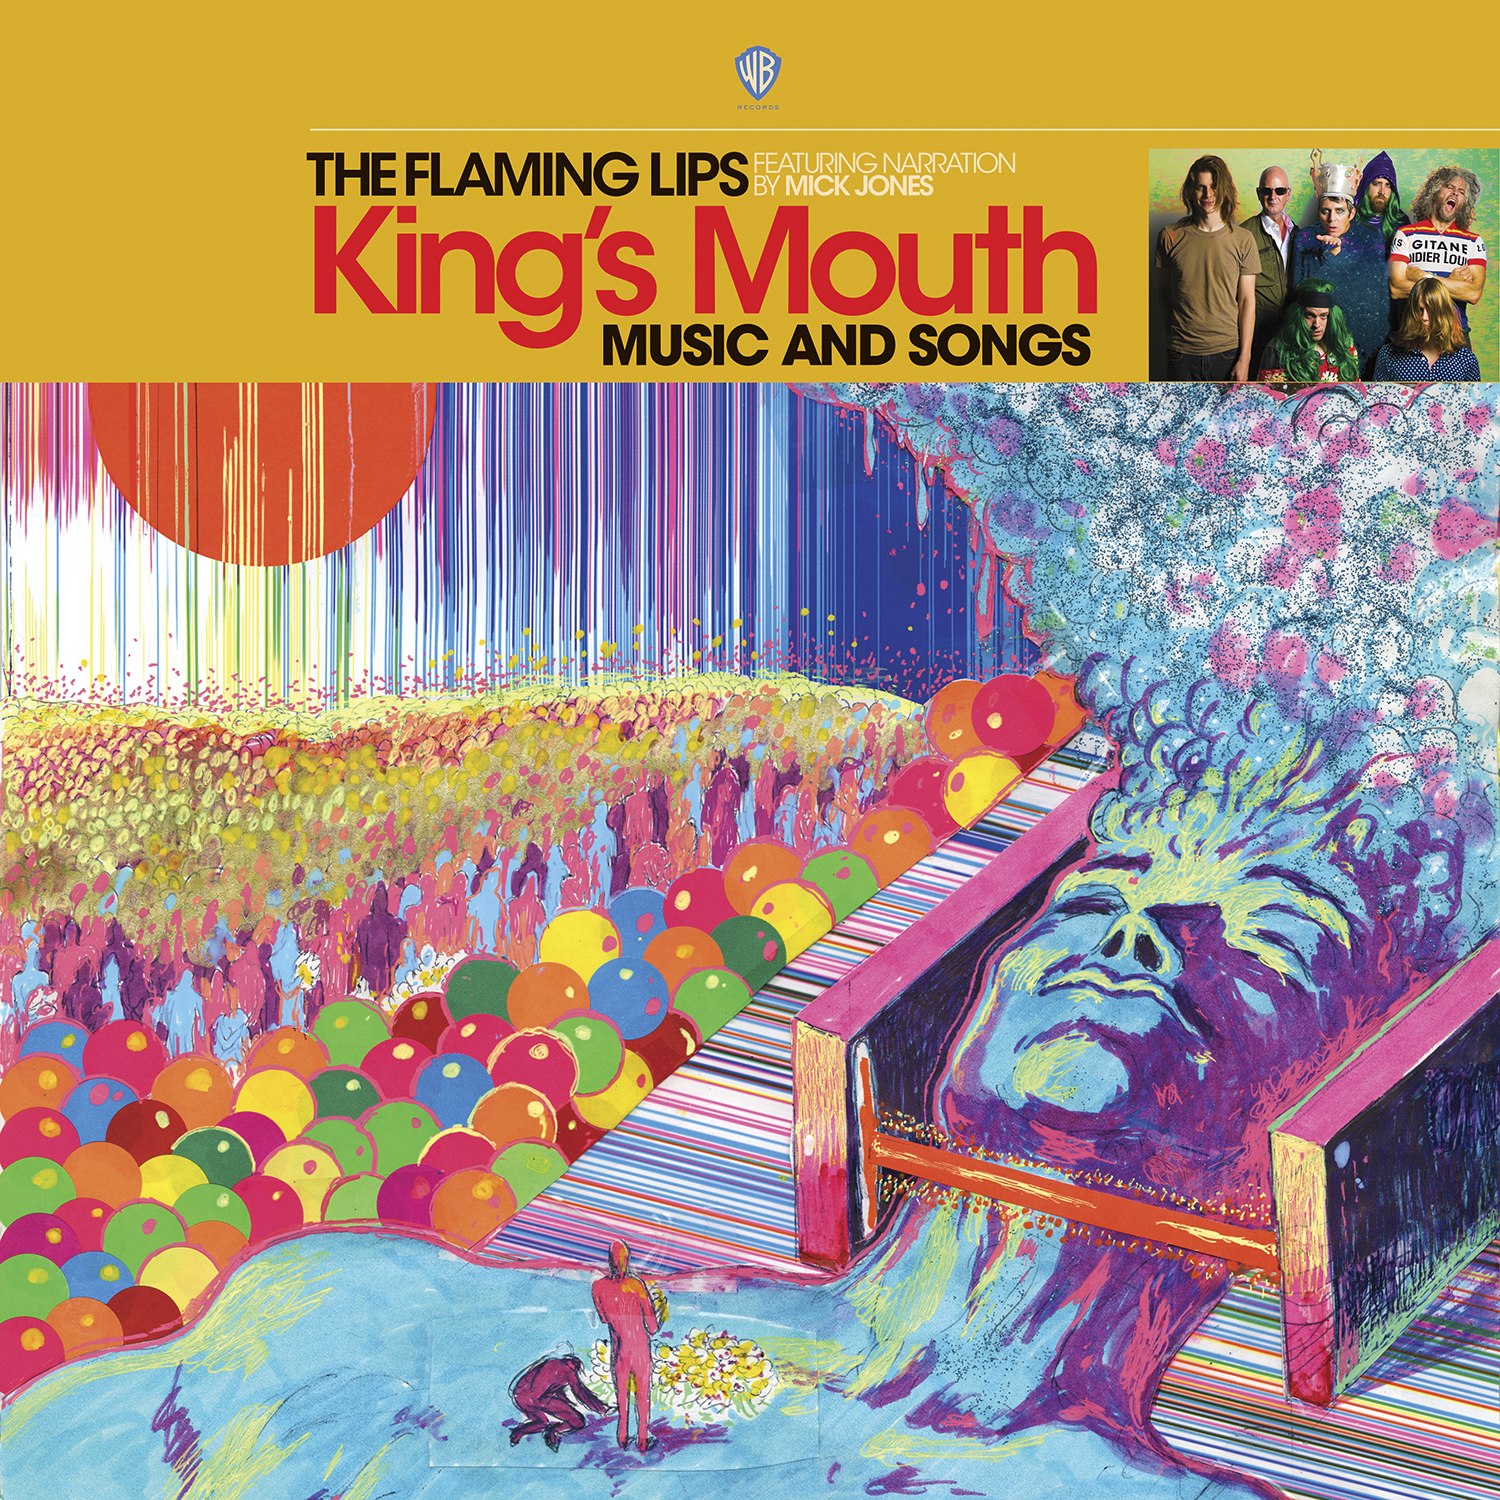 Flaming Lips Kings Mouth The Flaming Lips announce wide release of new album Kings Mouth